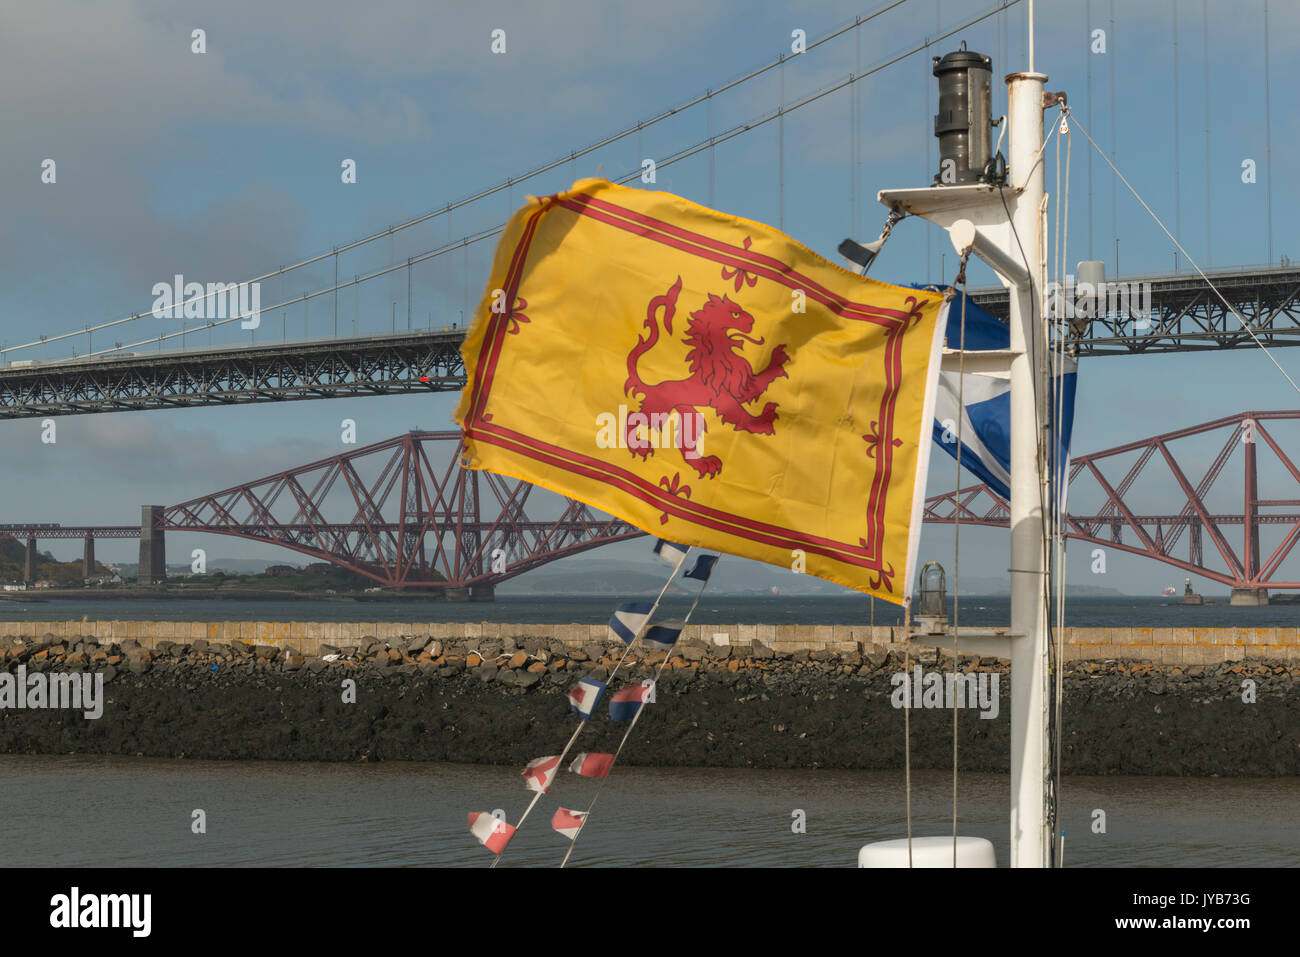 Scottish flags fly in front of iconic Scottish bridges, Firth of Forth, Scotland,  UK Stock Photo